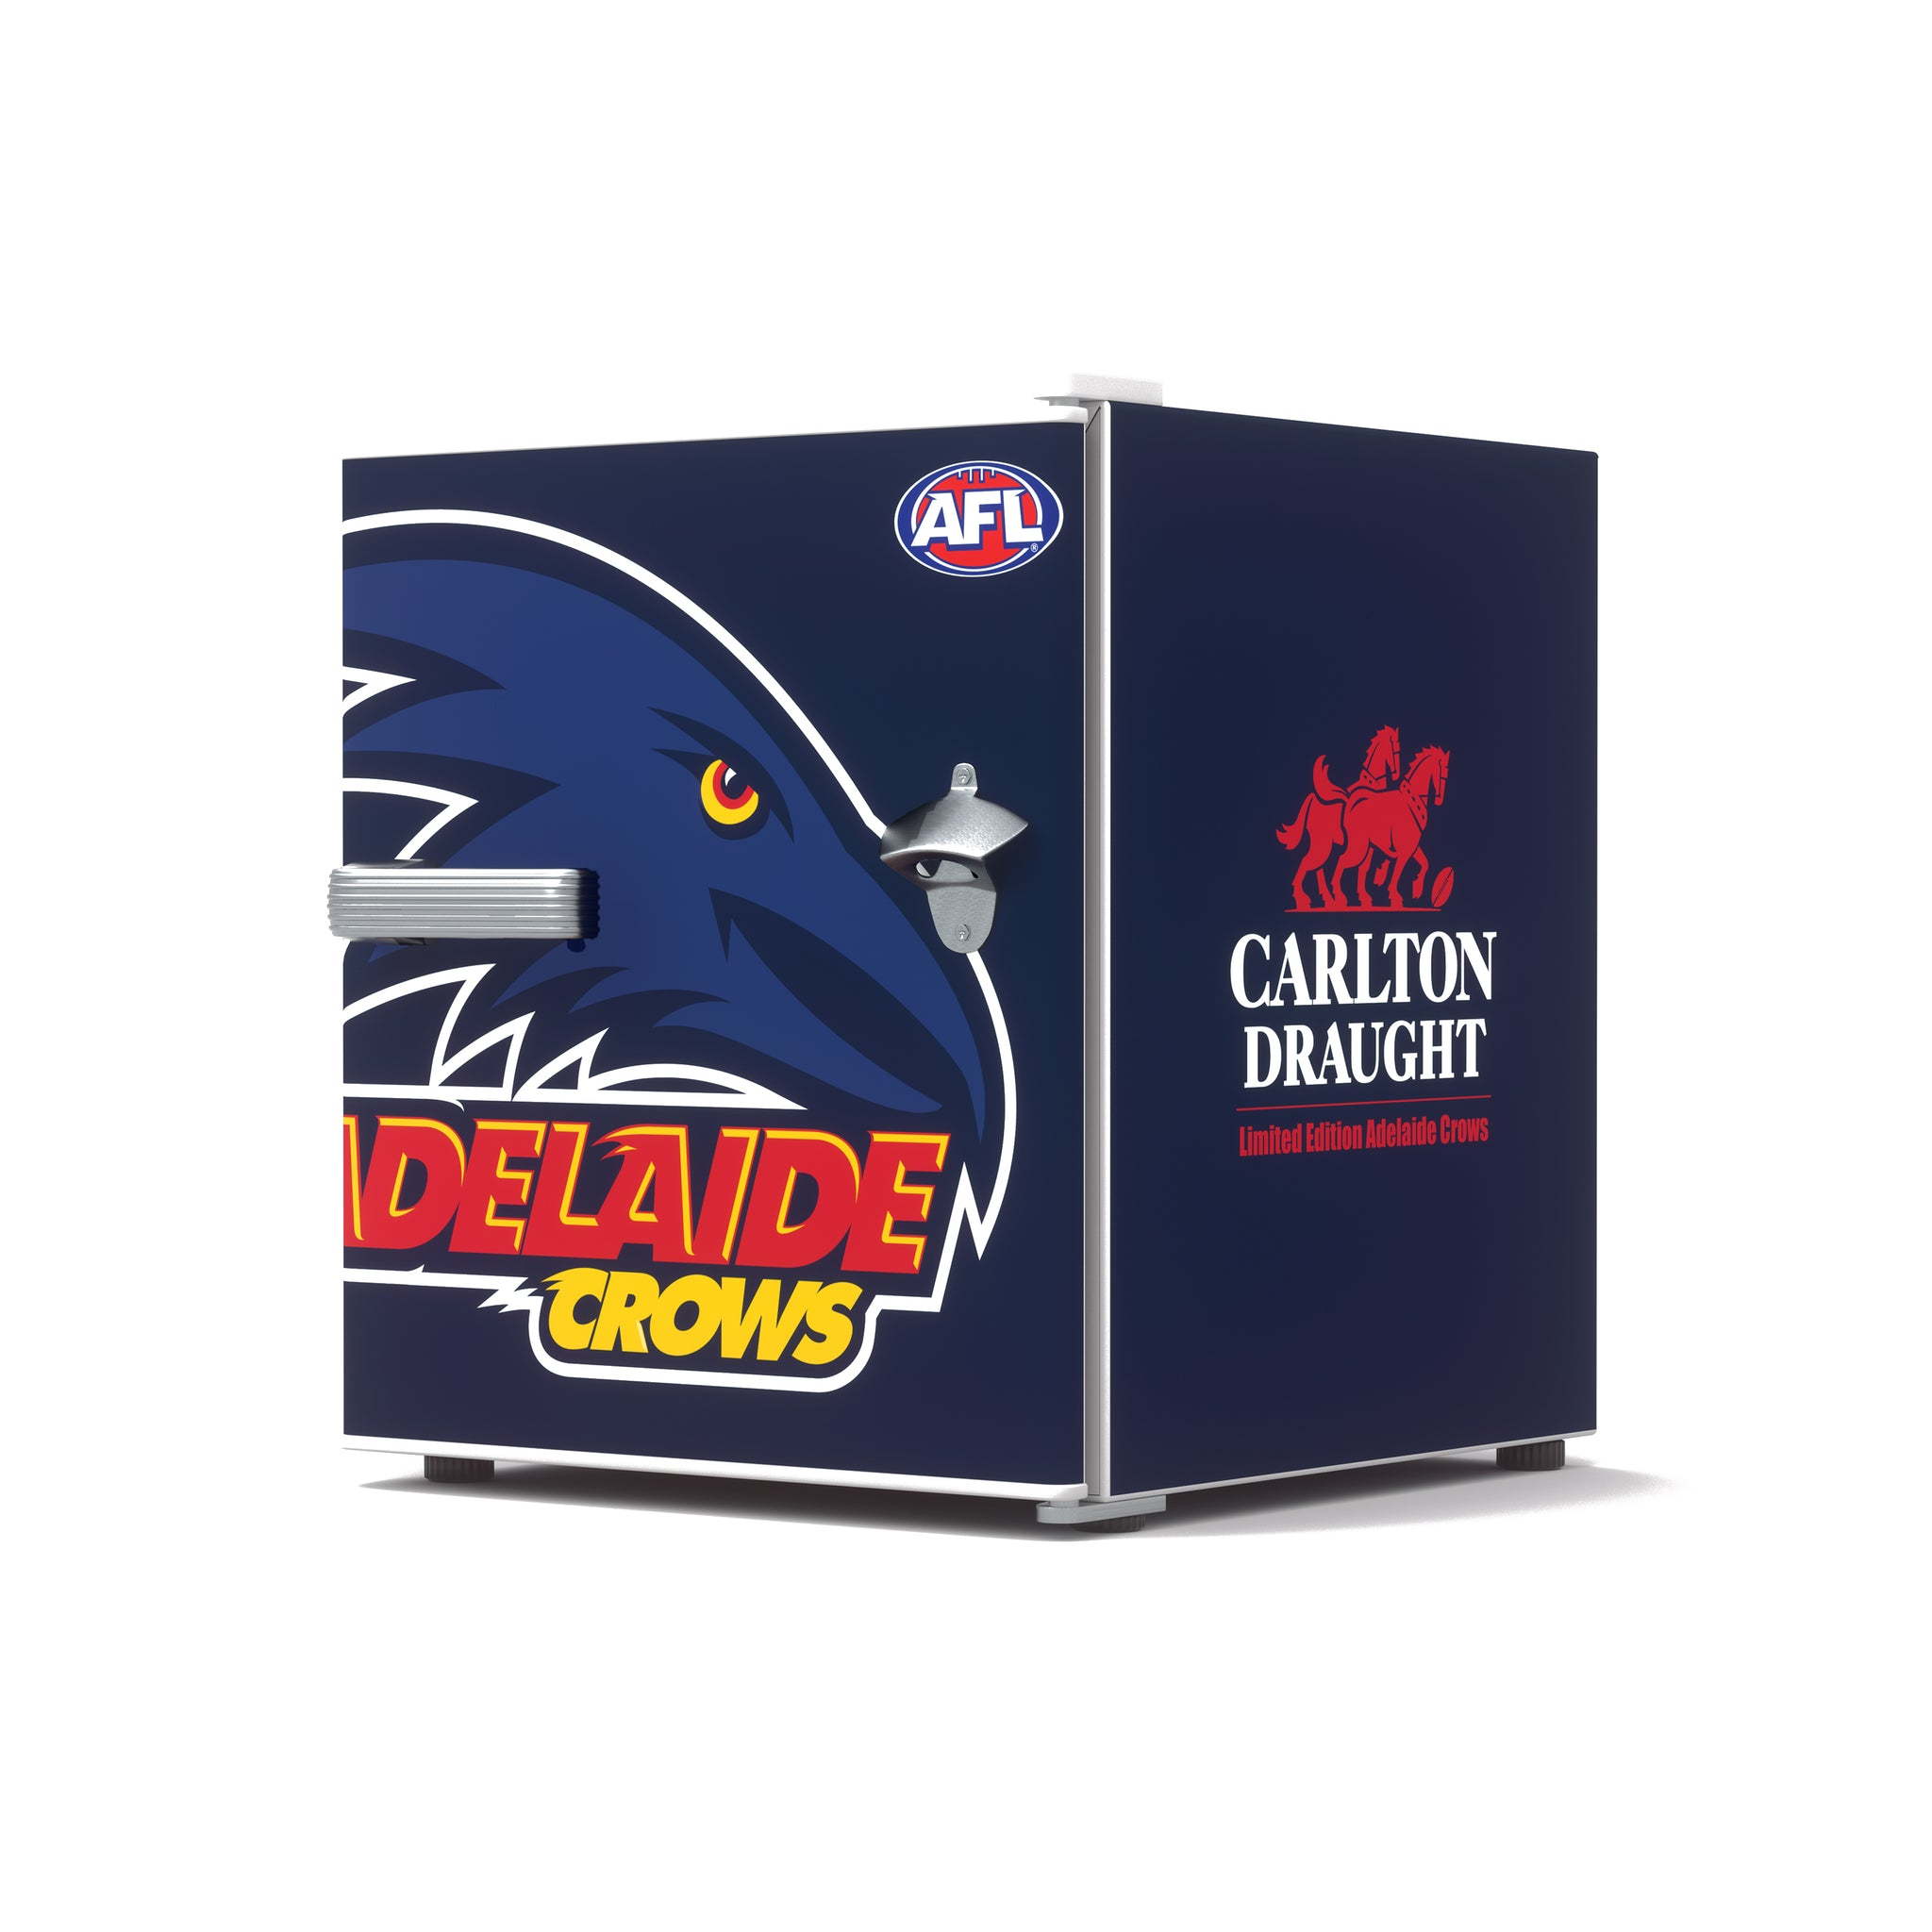 Carlton Draught x Adelaide Crows AFL Bar Fridge